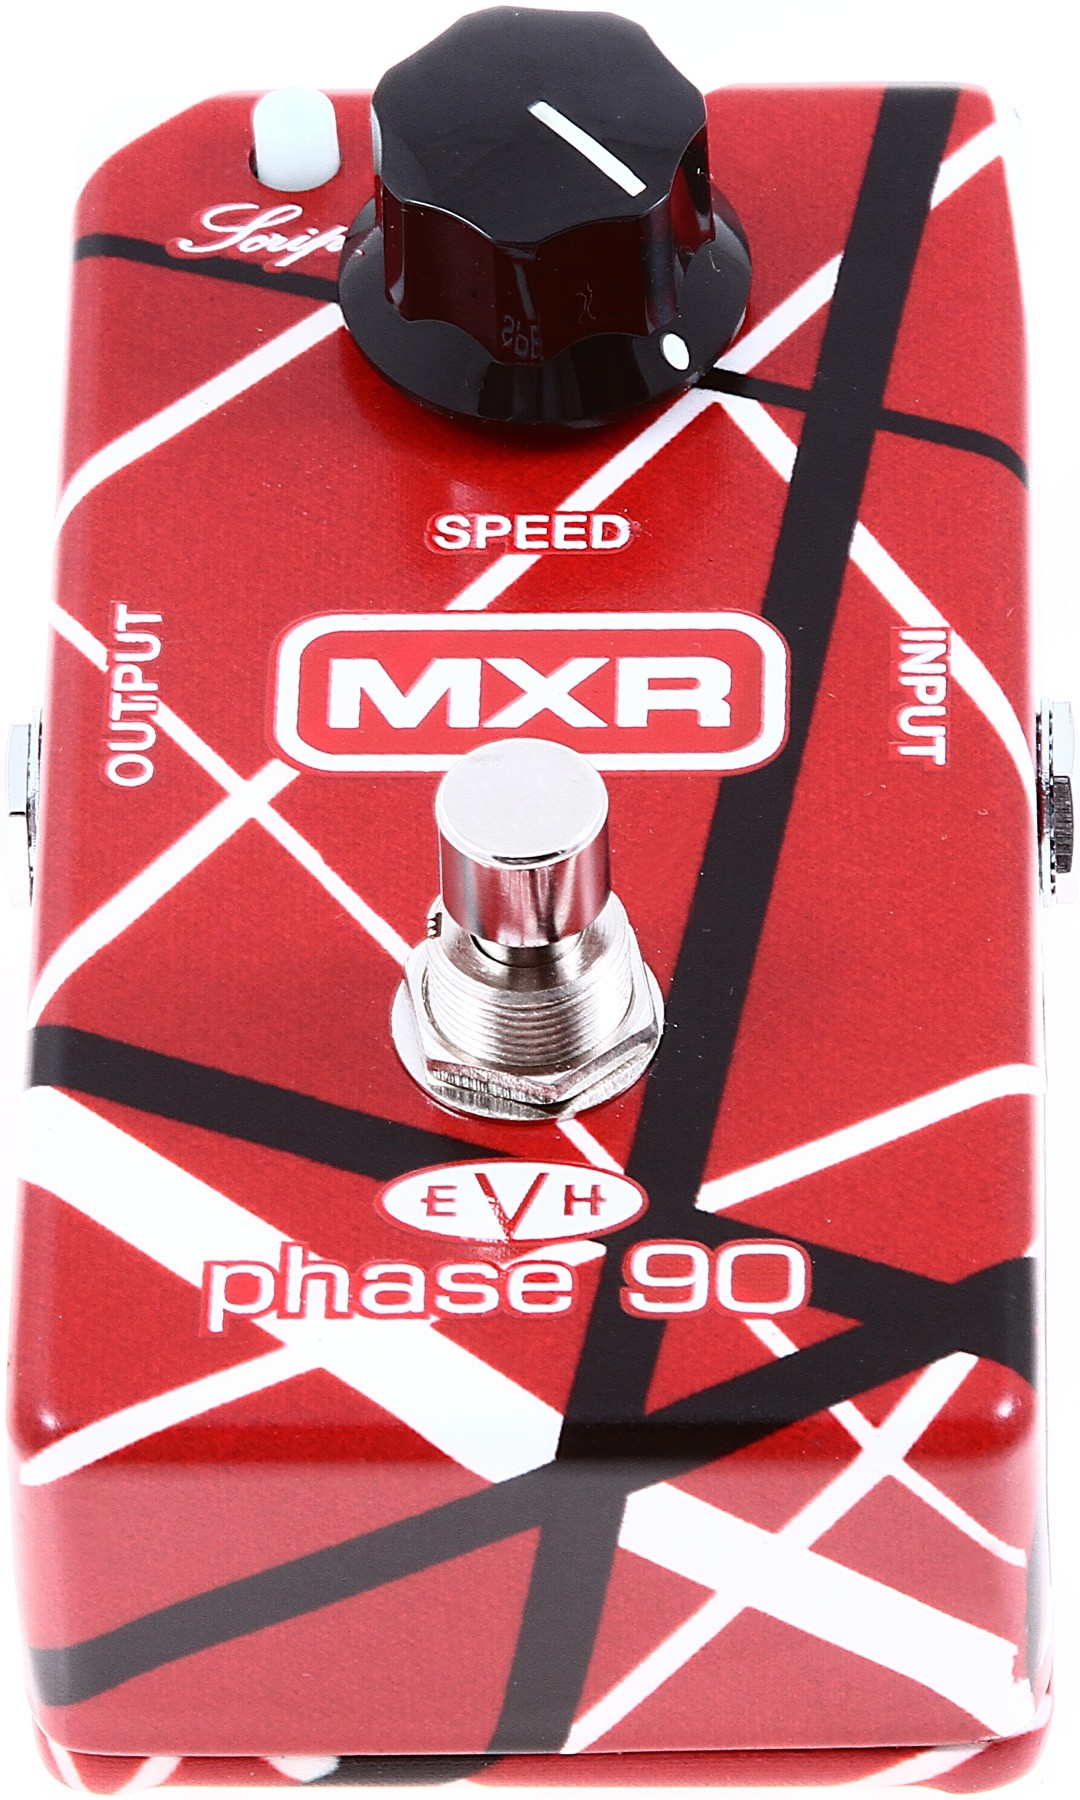 mxr evh 90 phaser pedal. Black Bedroom Furniture Sets. Home Design Ideas